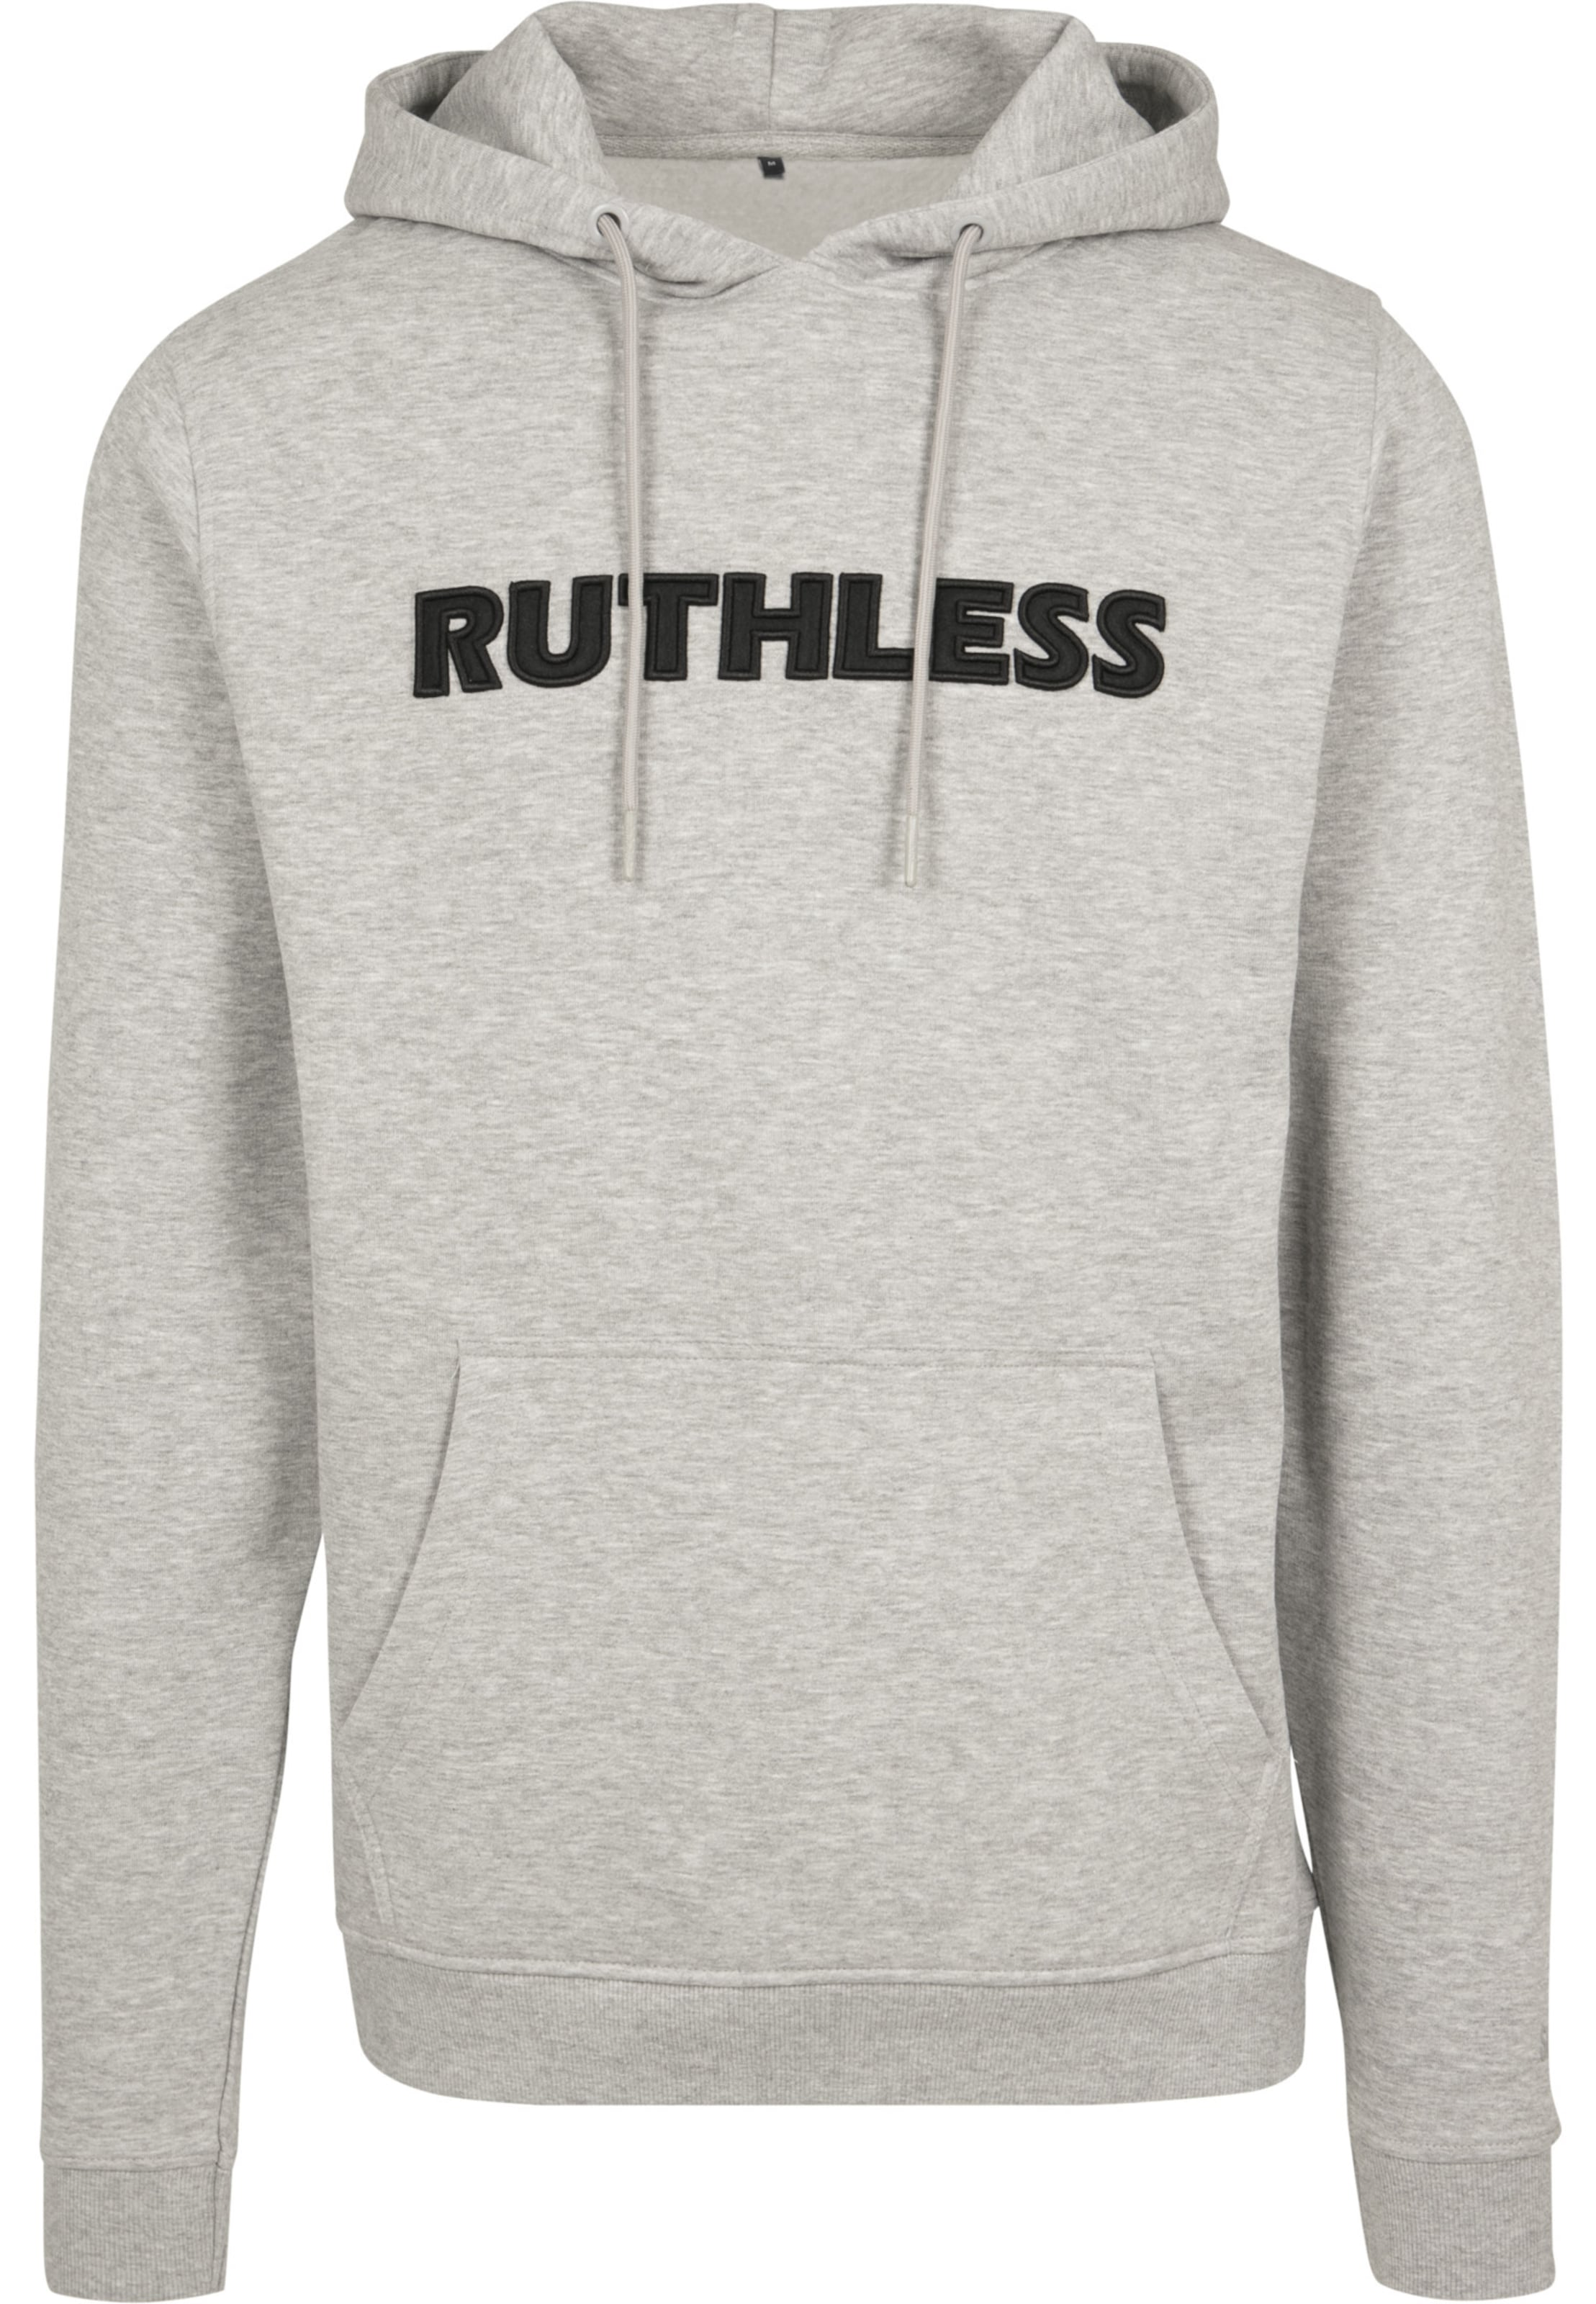 Tee Embroidery Mister Graumeliert Ruthless Hoody In eYWEH9bID2